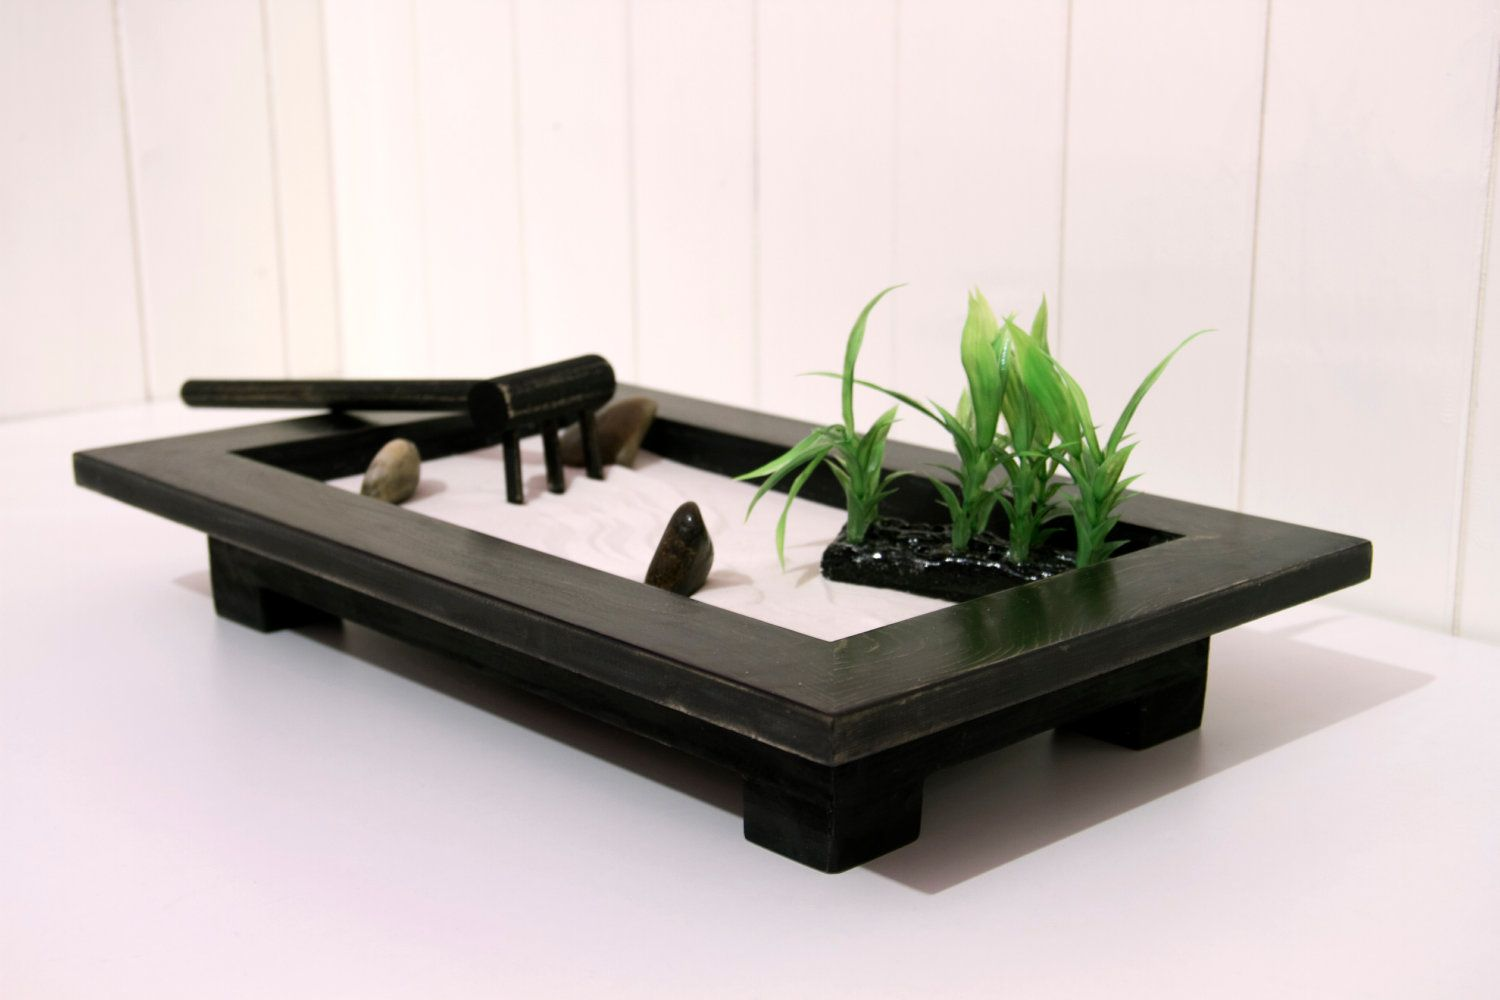 mini indoor zen garden zen garden inspiration zen garten mini zen garten. Black Bedroom Furniture Sets. Home Design Ideas